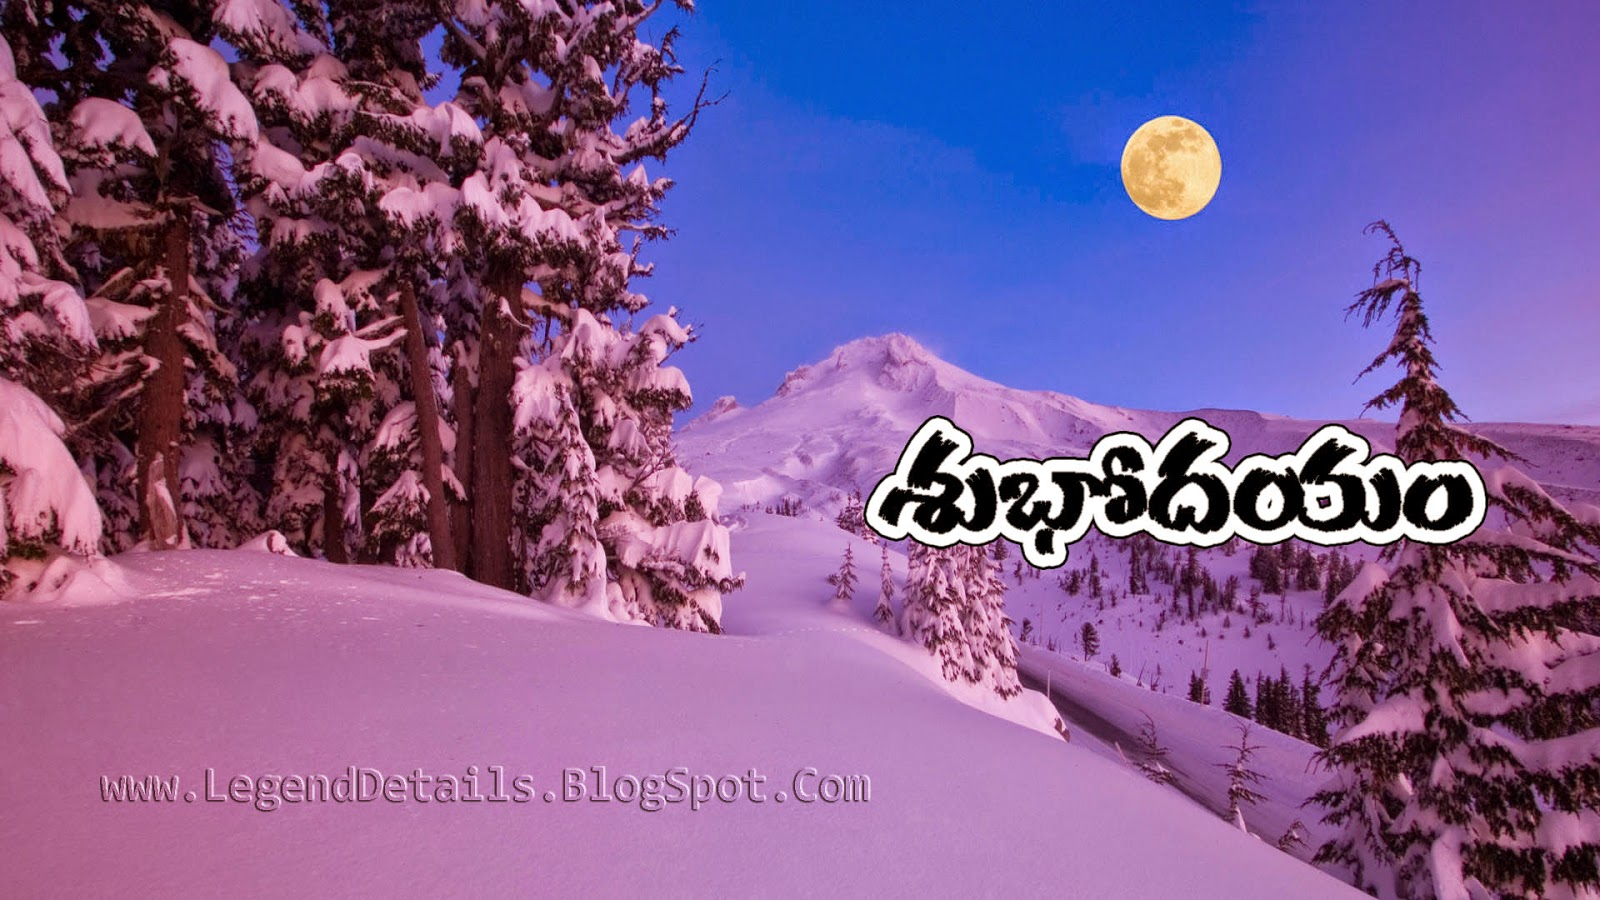 Good morning wishes in telugu hd good morning hd greeting in telugu good morning messages sms hd wallpapers quotes wap greetings kristyandbryce Gallery